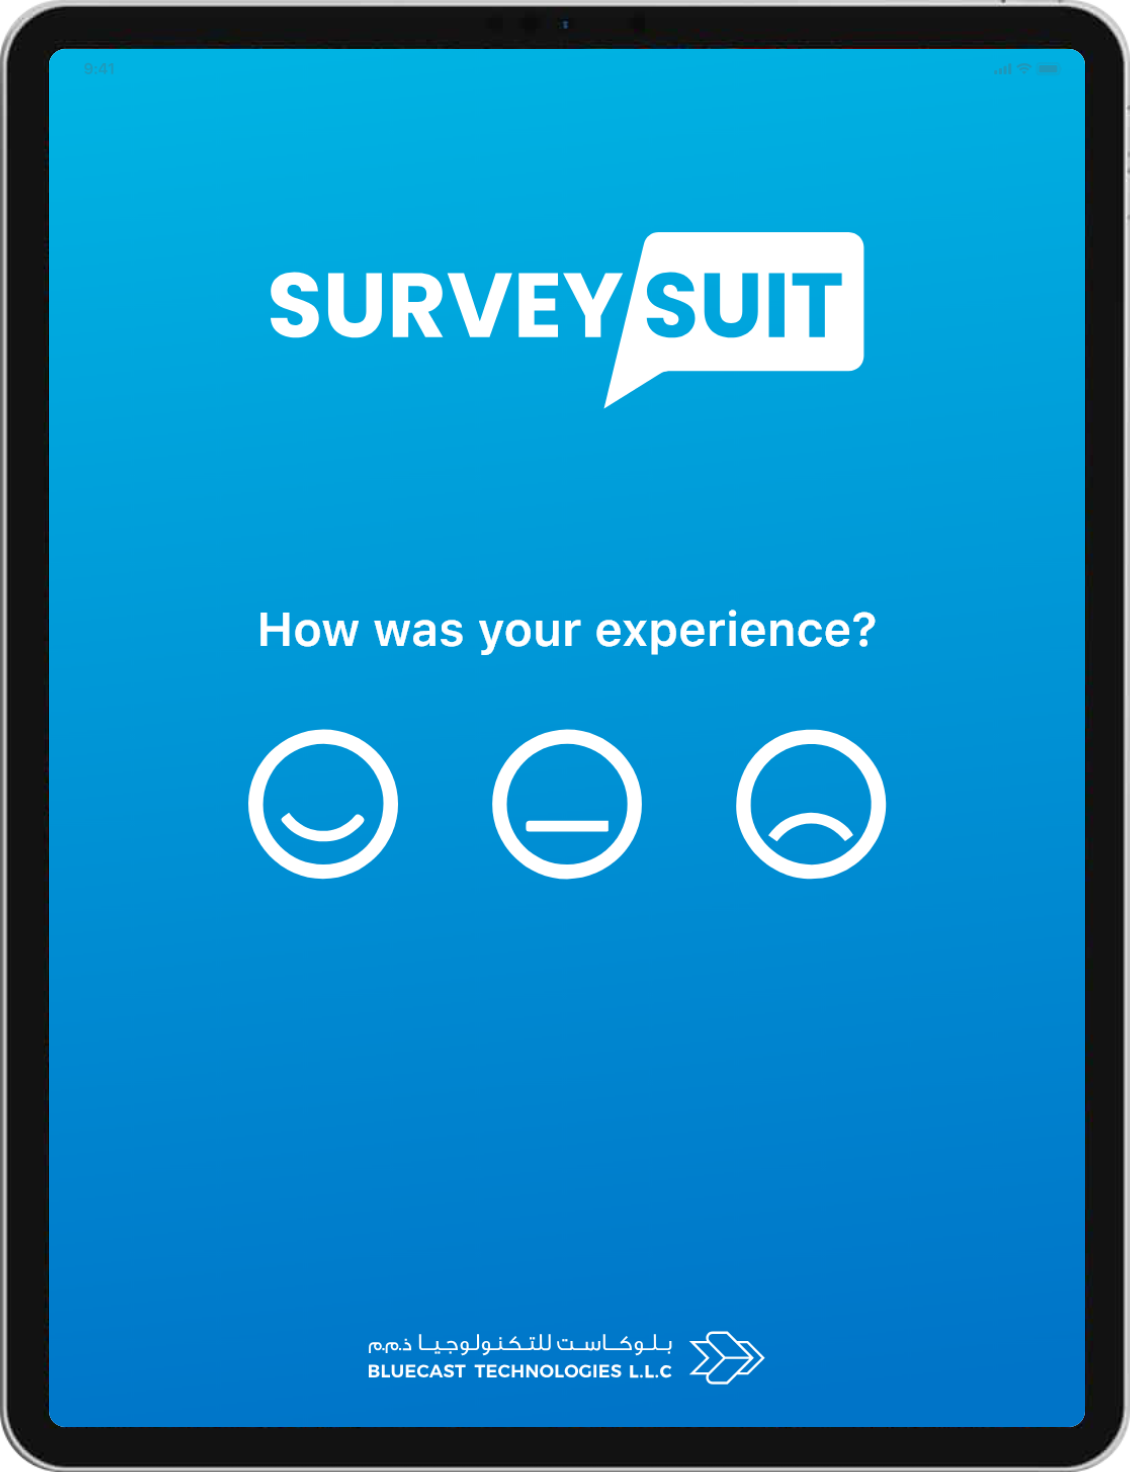 Survey_suit_7